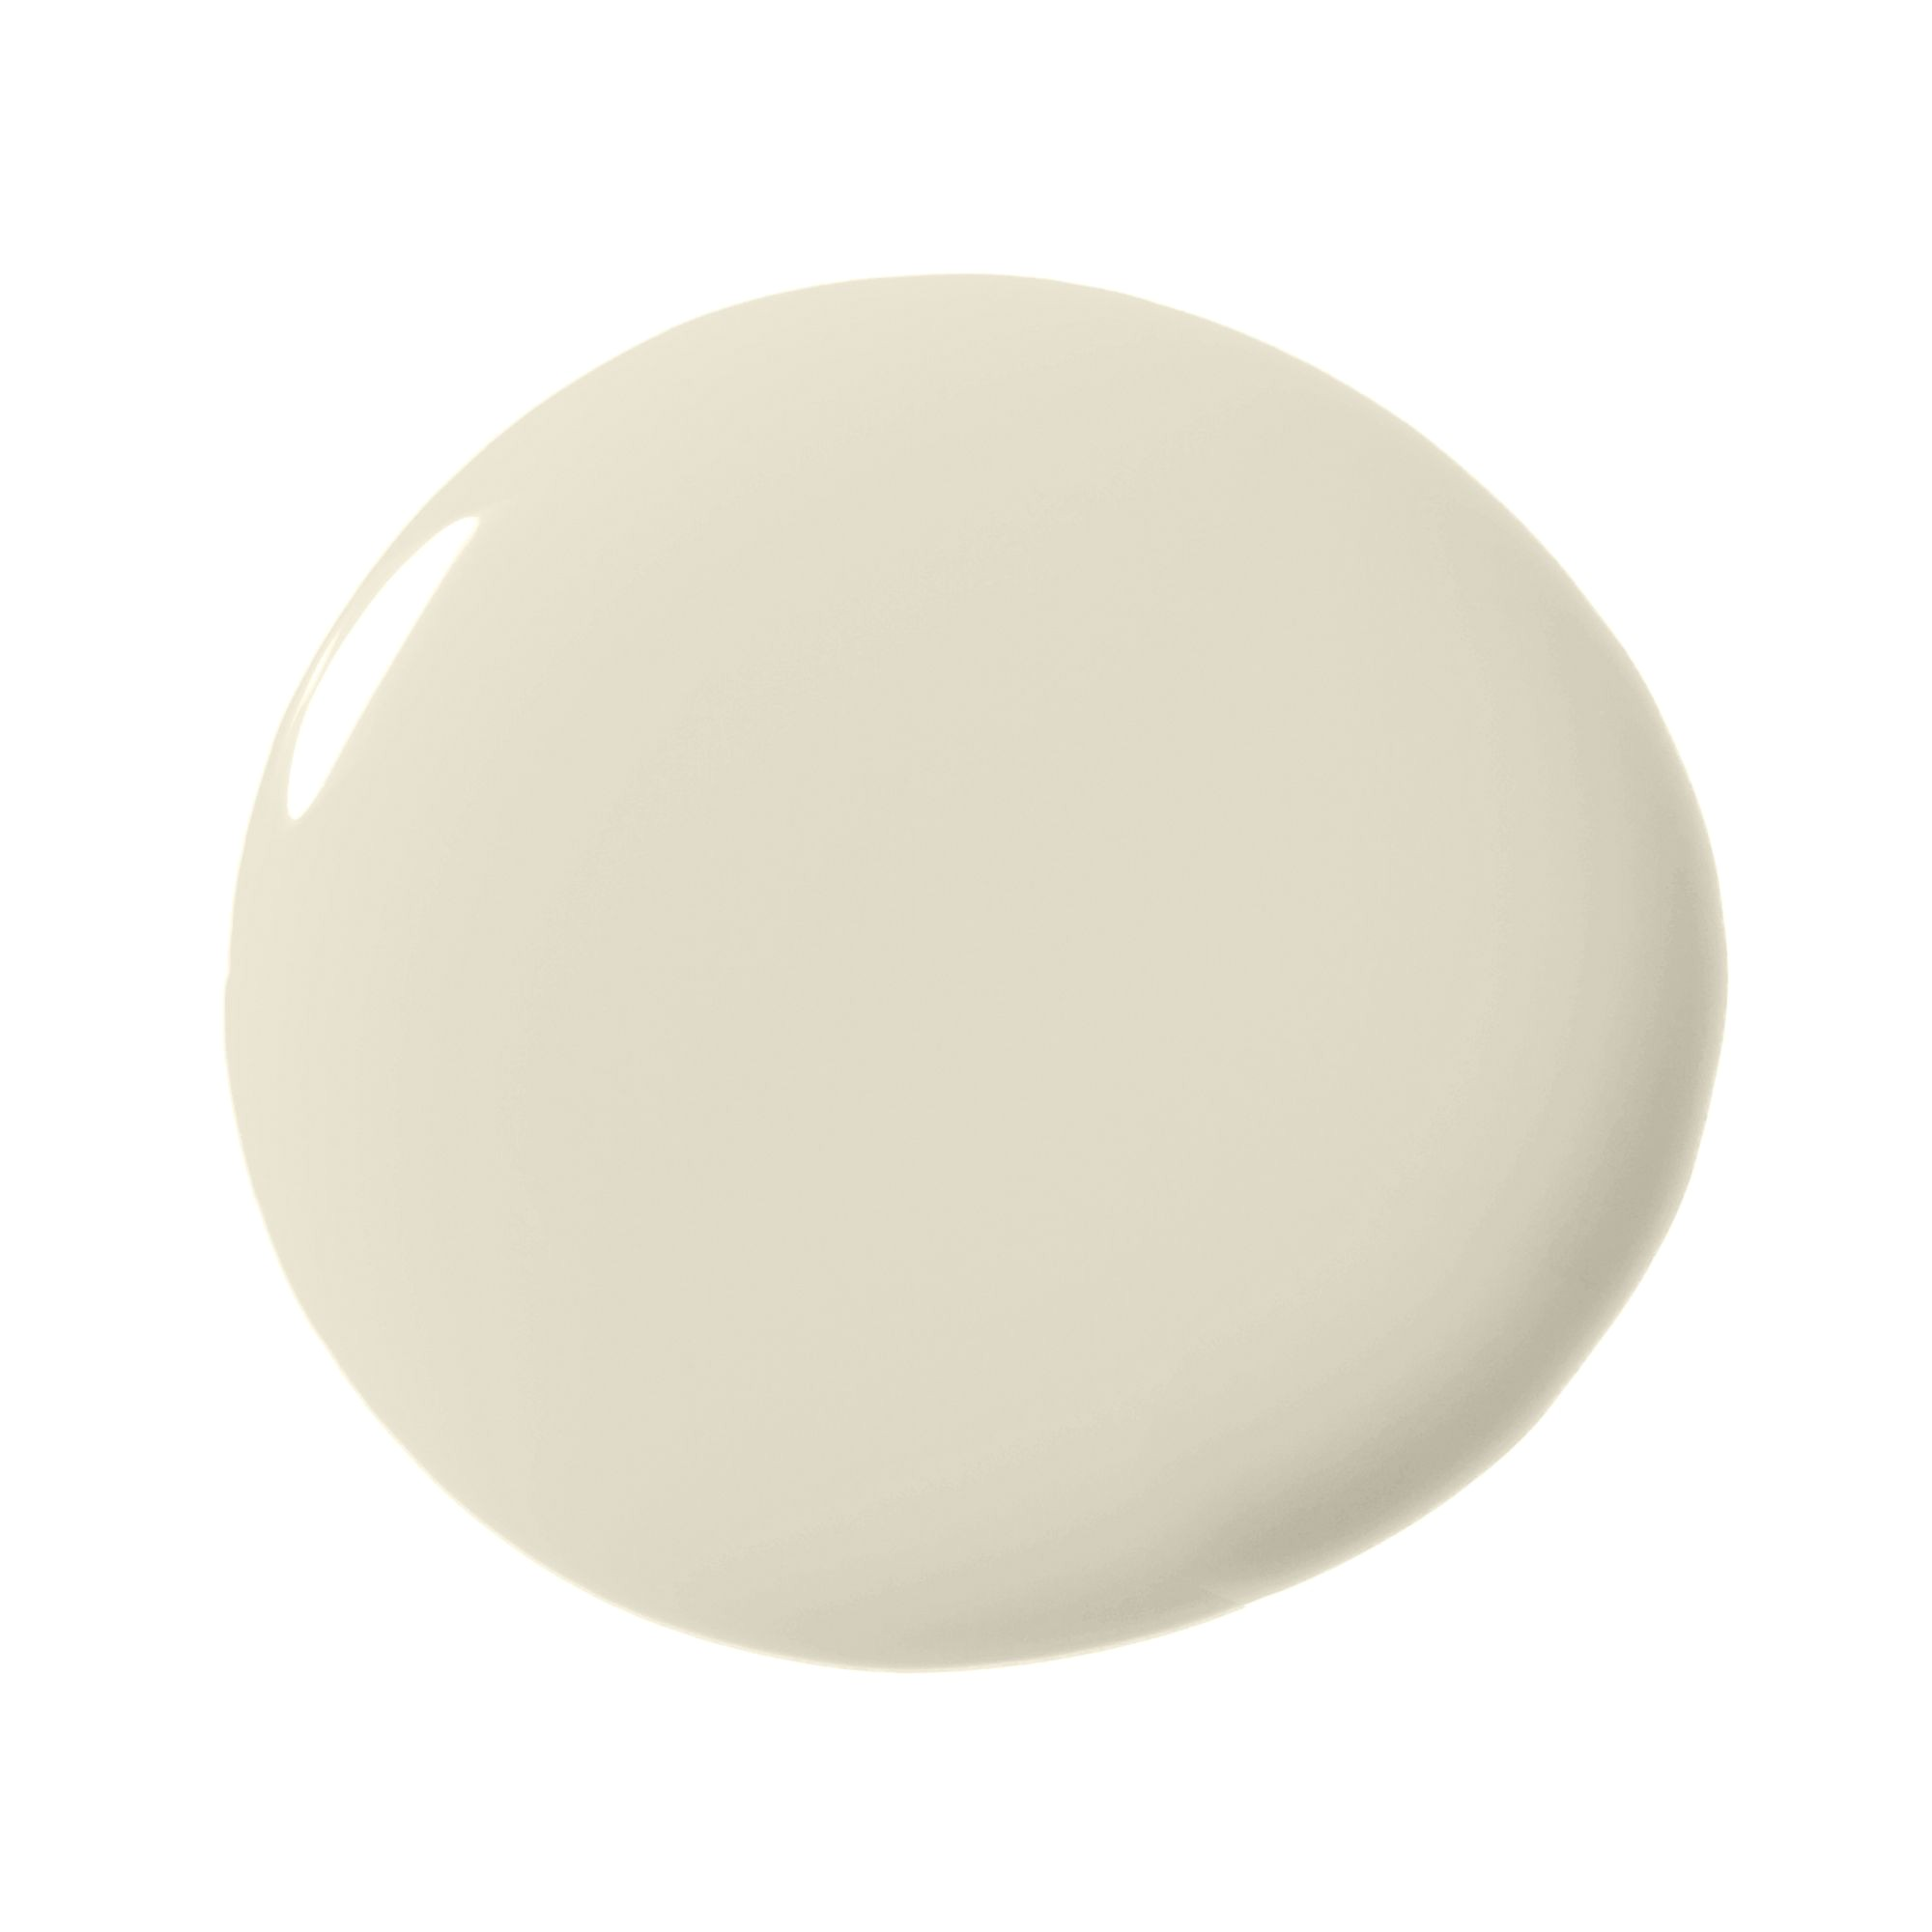 benjamin moore feather down 953 a warm neutral to offset white cabinets and trim